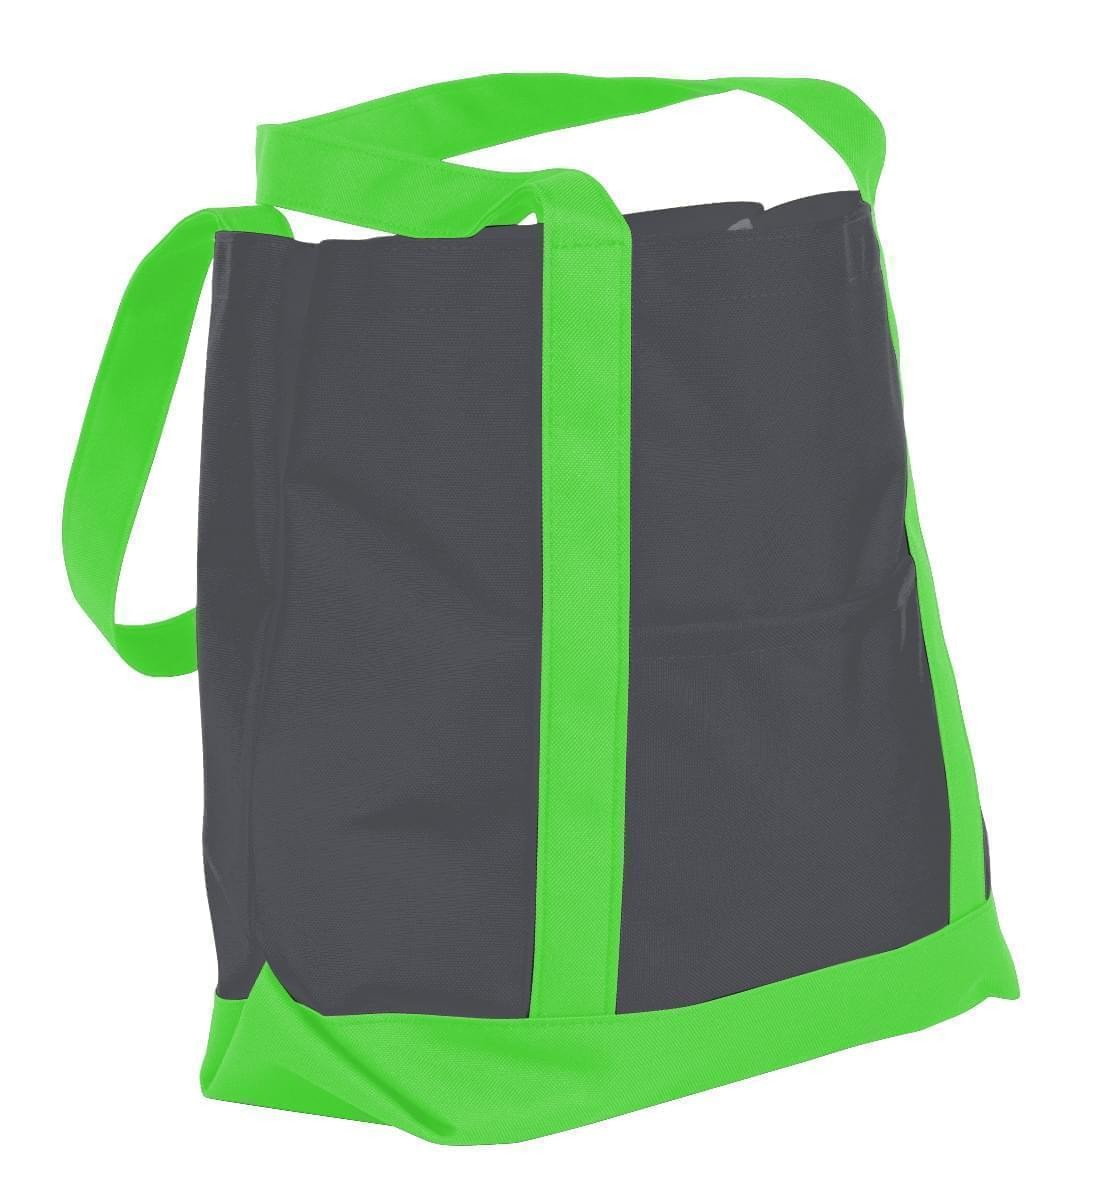 USA Made Nylon Poly Boat Tote Bags, Graphite-Lime, XAACL1UARY